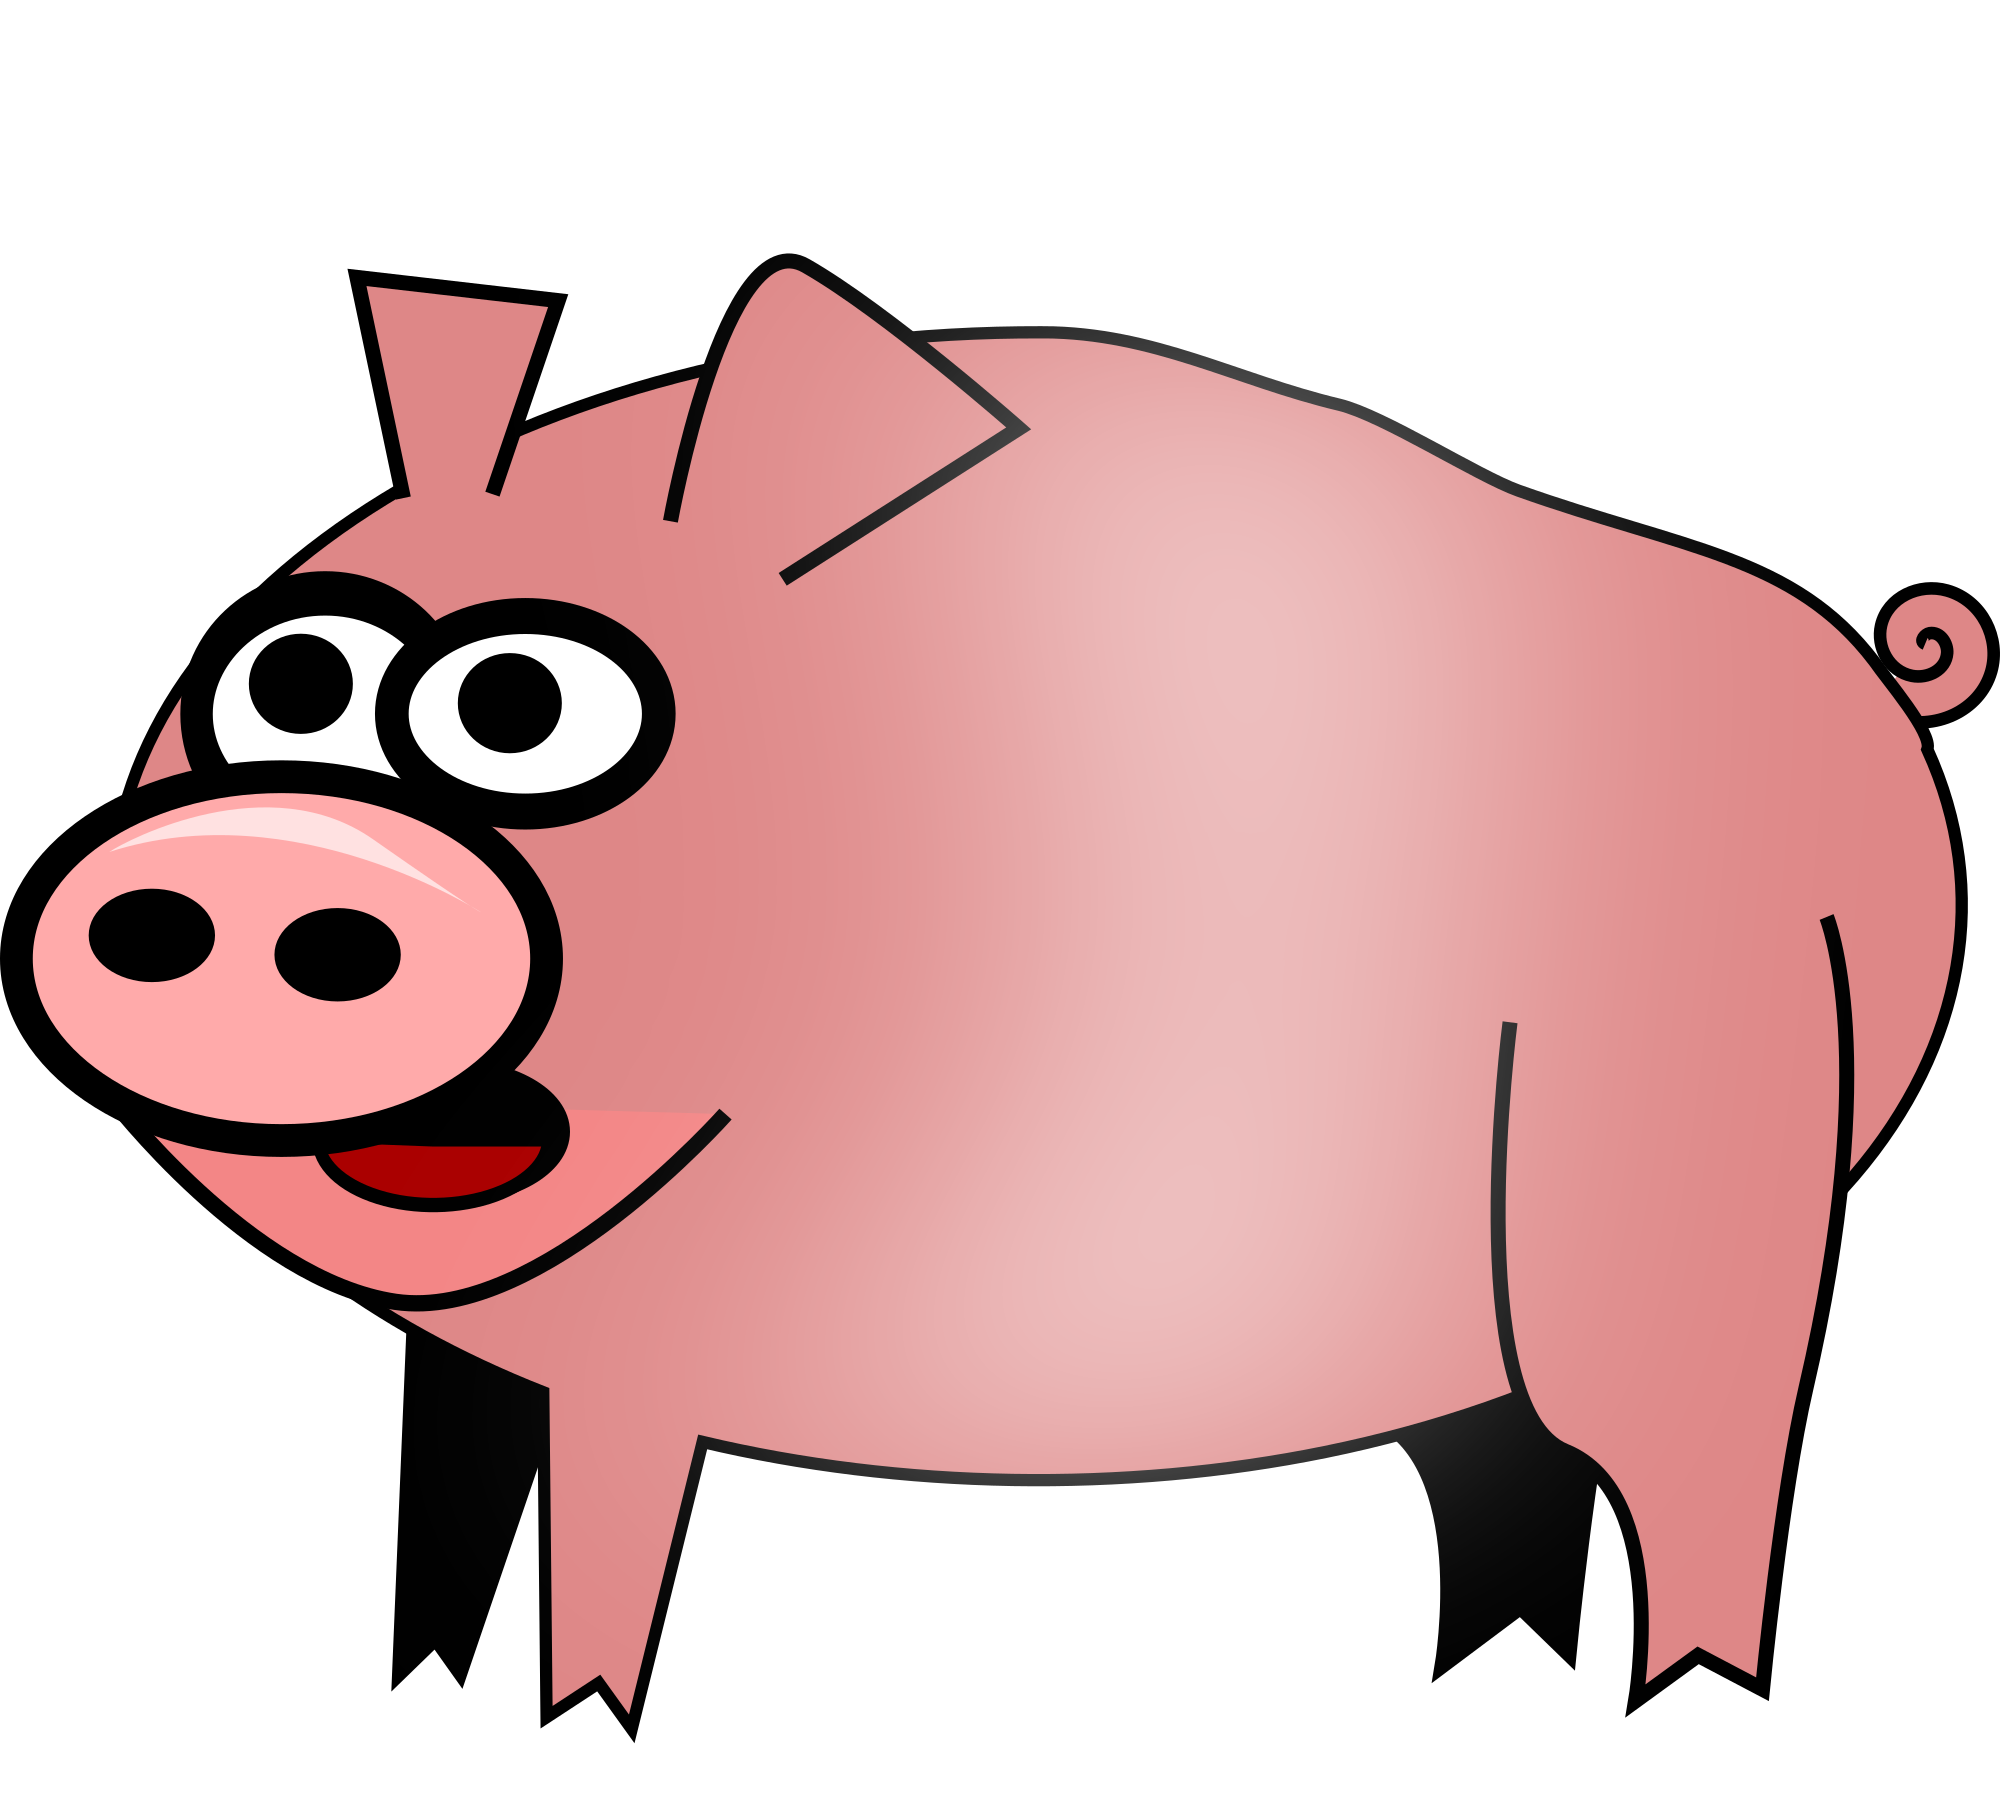 Pig clipart pig animal clip art downloadclipart org.